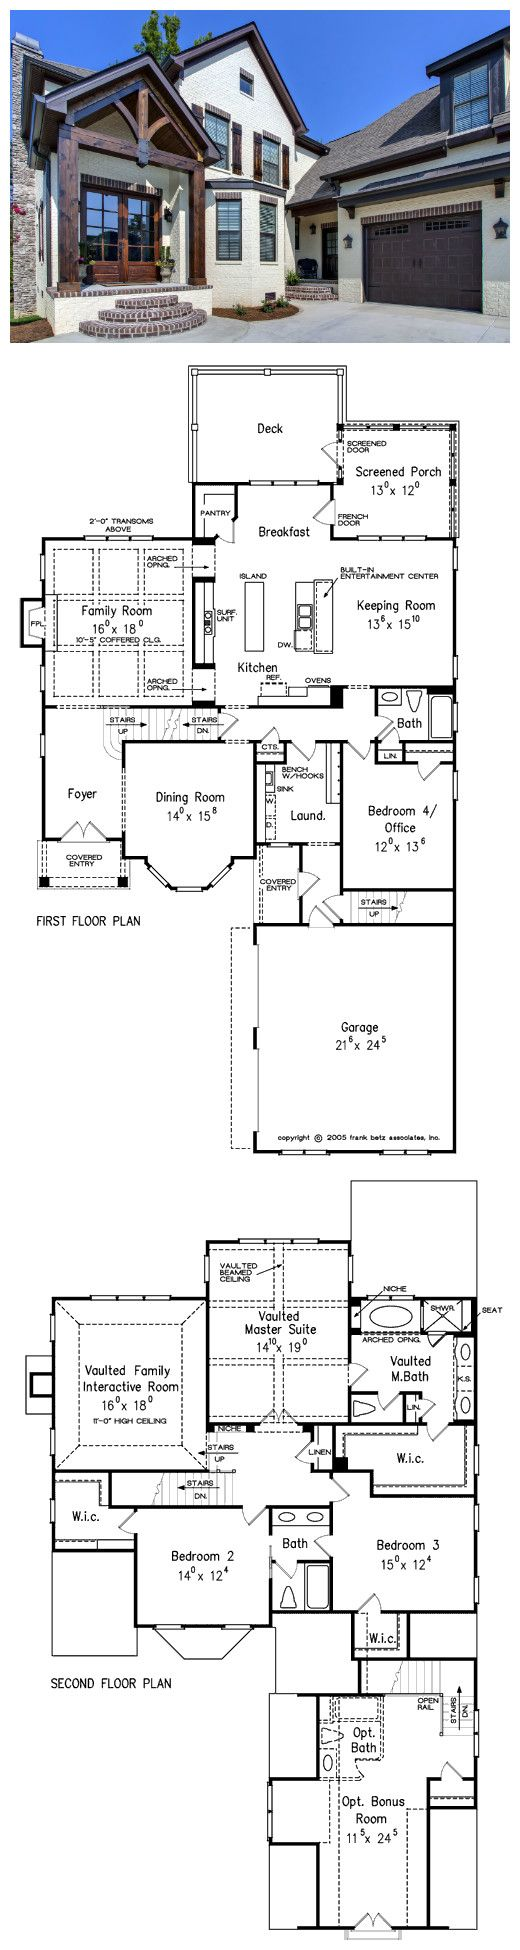 72 best images about plan of the week on pinterest for The ansley floor plan